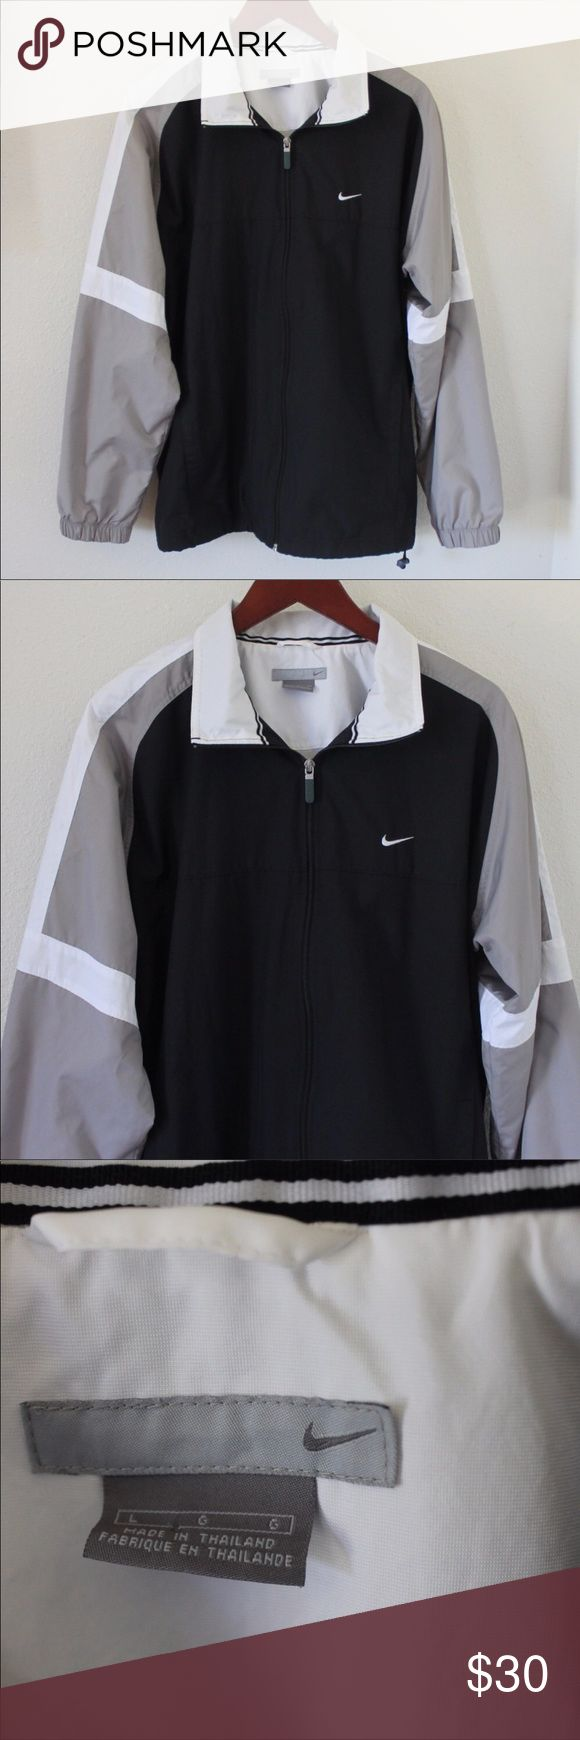 Nike vintage windbreaker Bought this on here but never wear it! Super cute NO FLAWS. Hit me with a price Nike Jackets & Coats